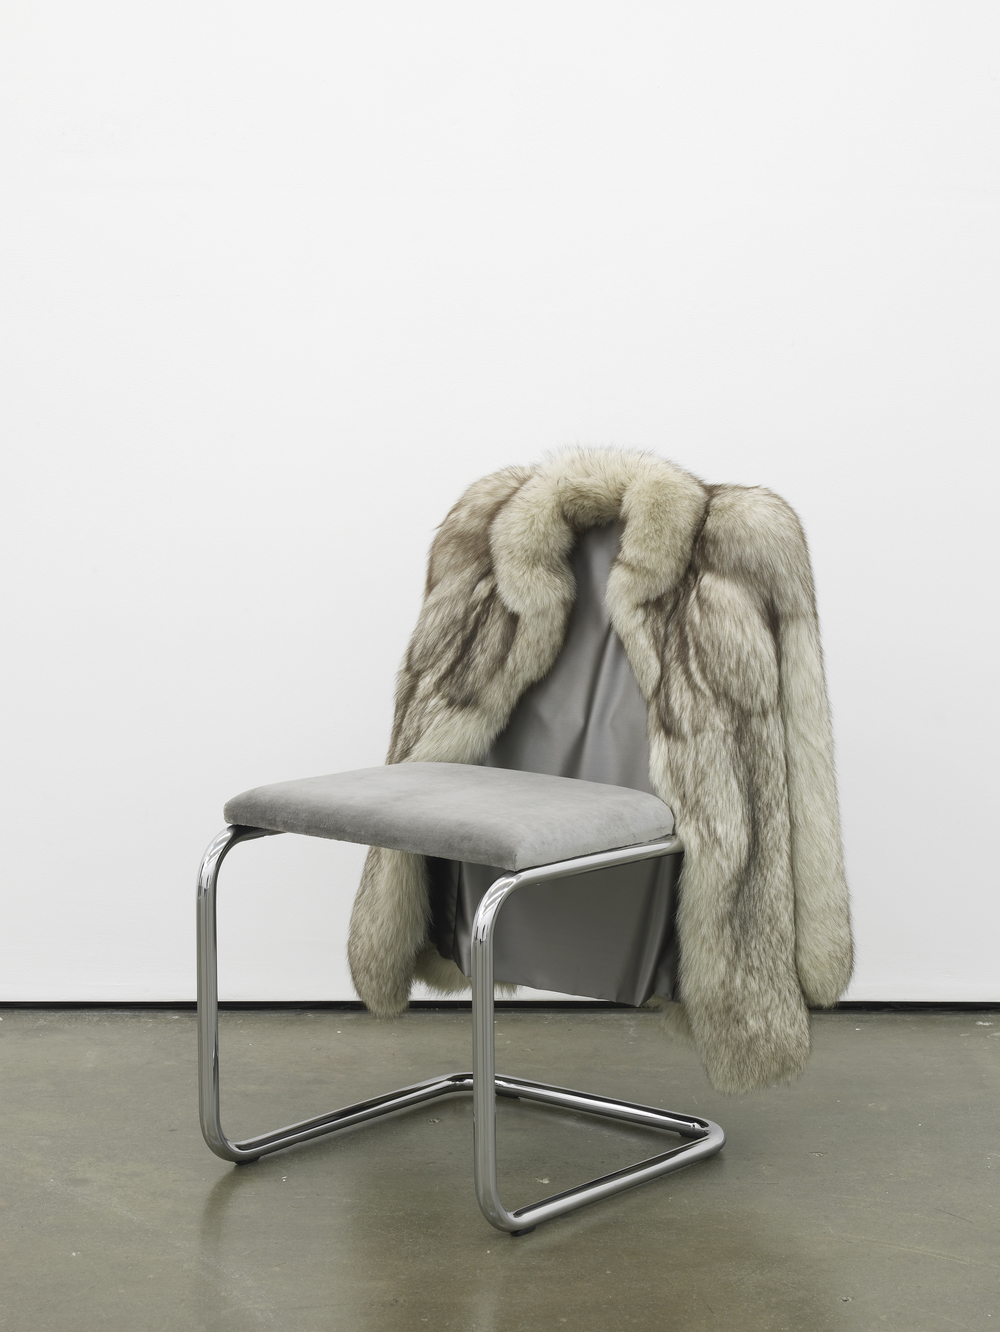 Untitled Chair - FXG-1 2015 Vintage fur, steel tubing, upholstery, silk and velvet 85 x 65 x 60 cm / 33.4 x 25.5 x 23.6 in